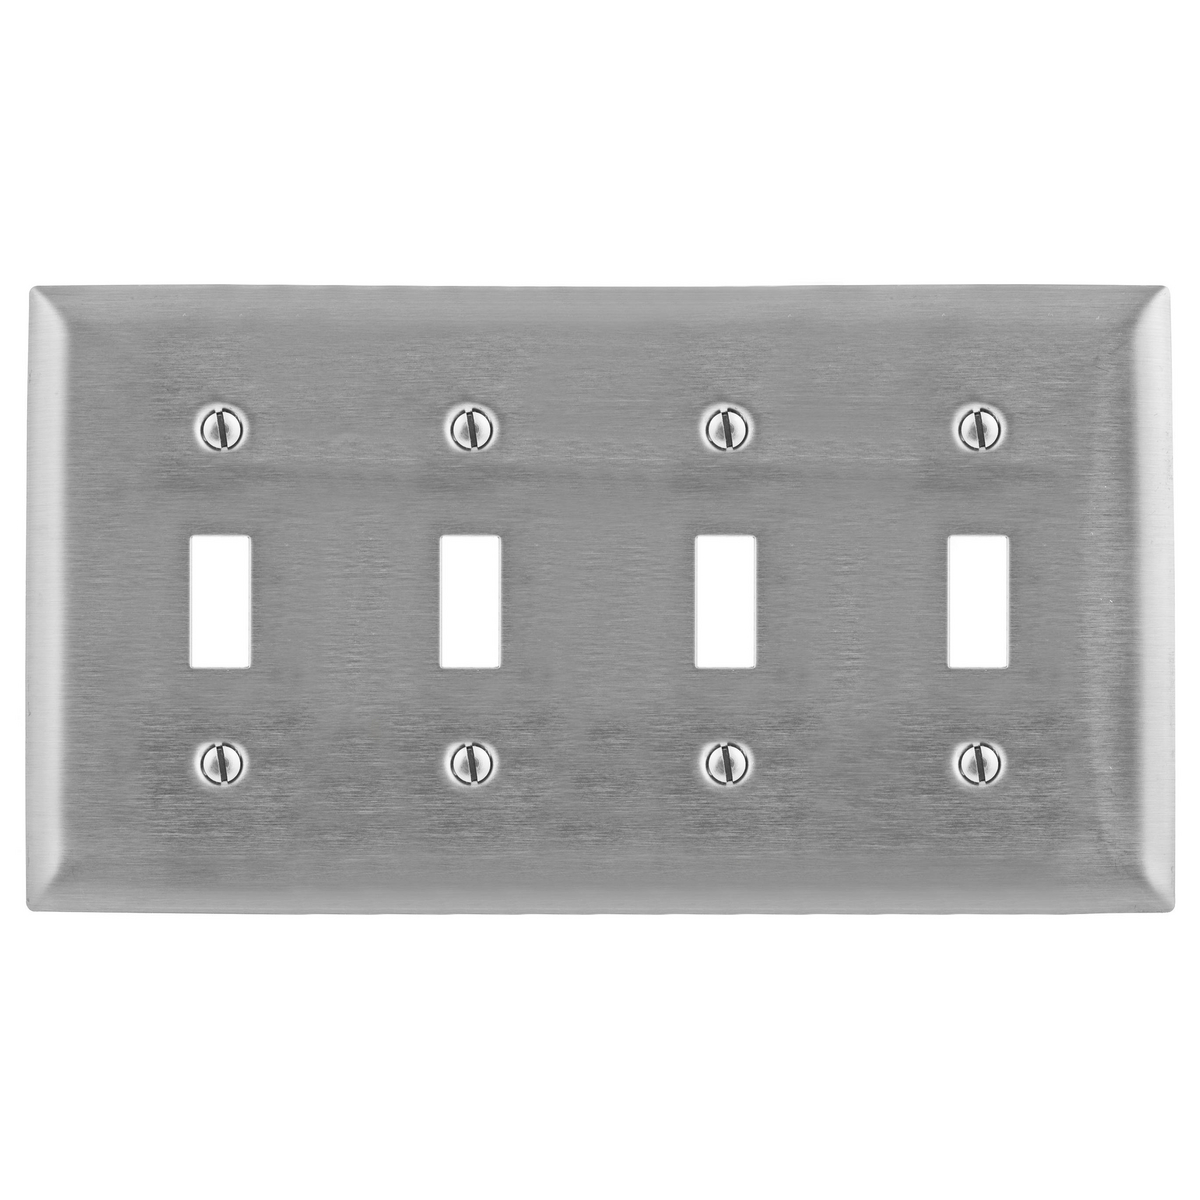 Hubbell SS4 4-Gang Stainless Steel 4-Toggle Switch Strap Mount Wallplate